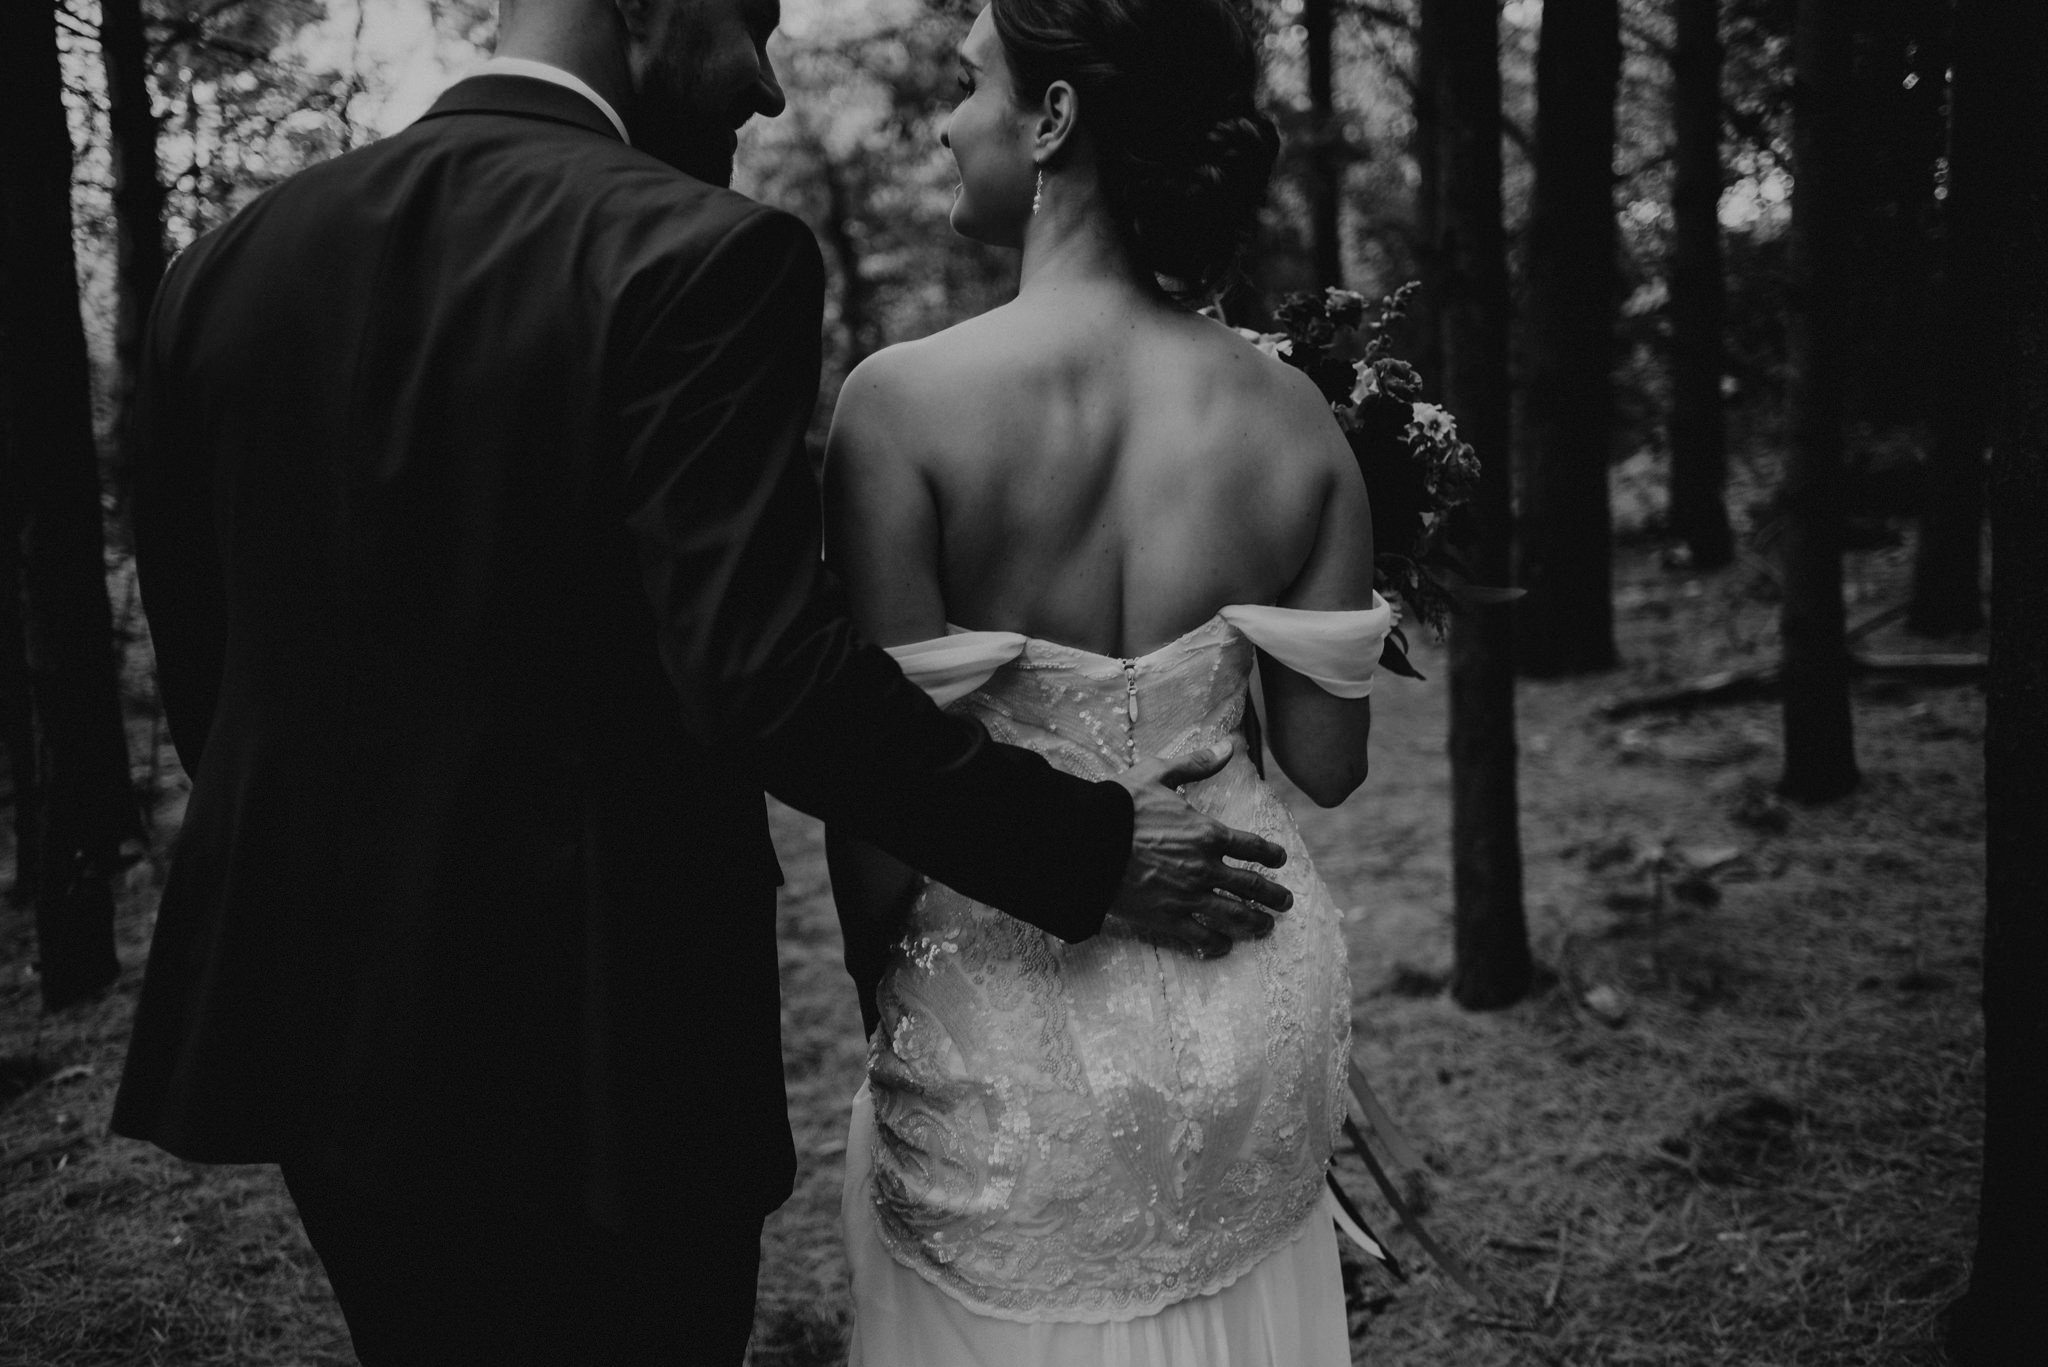 Groom's hand on back of bride's dress as they walk in forest